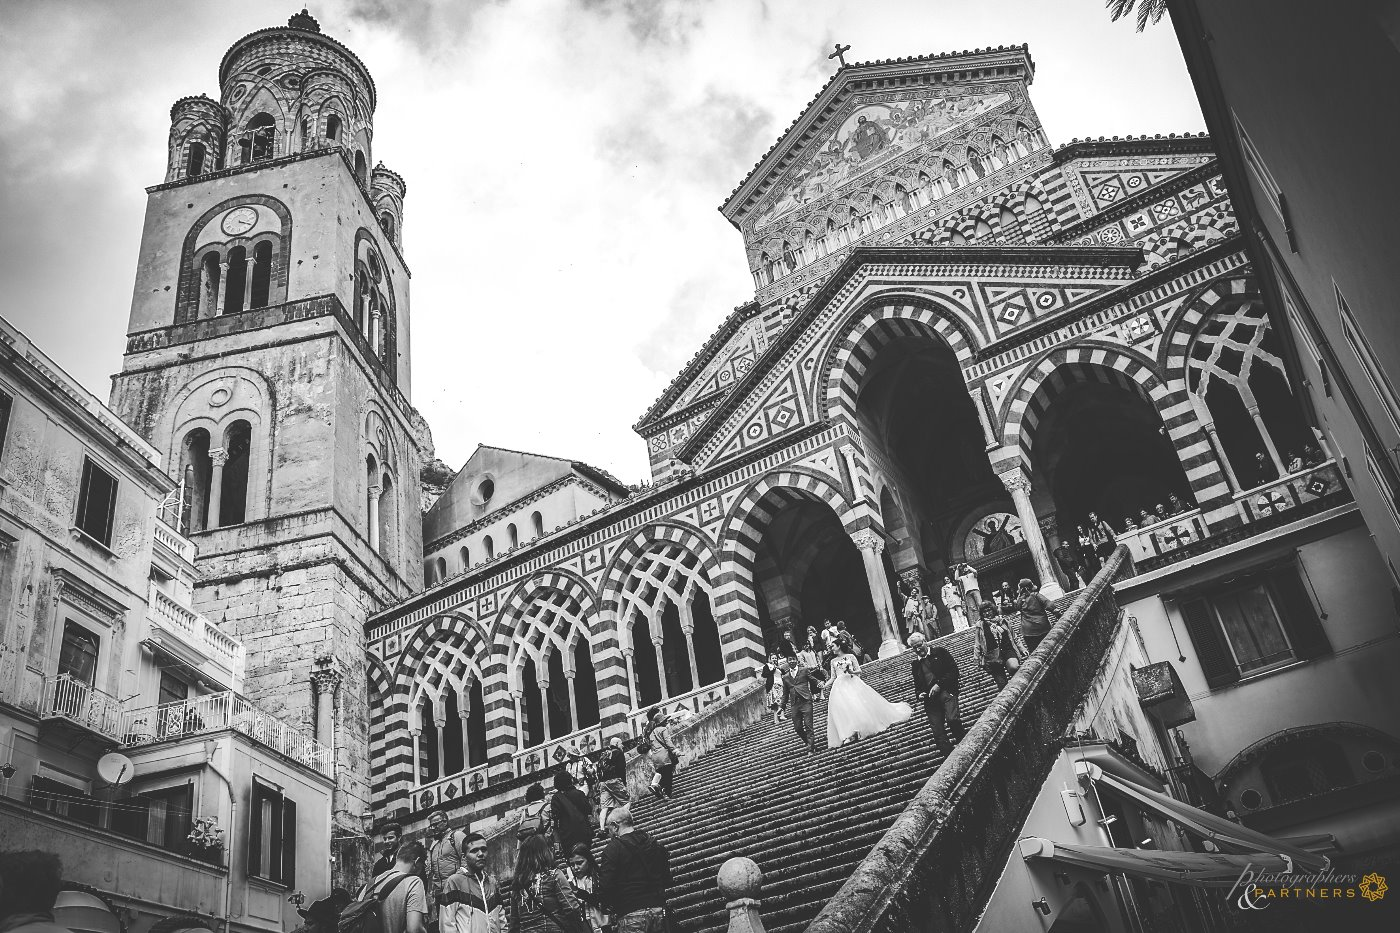 Up and down on the stairs of the Amalfi Cathedral 🎬